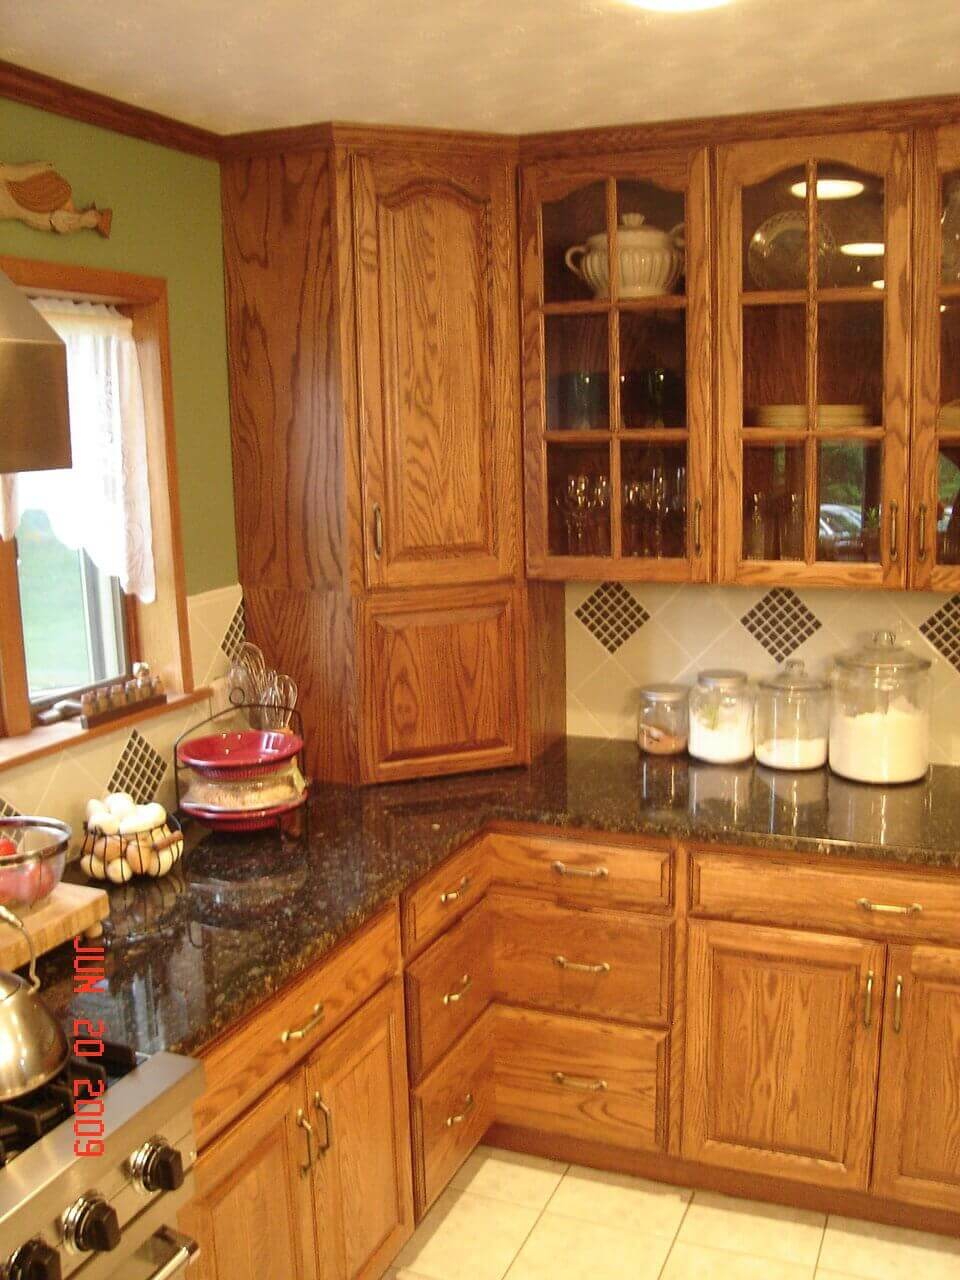 How Much Does It Cost To Update My Kitchen With VEP?